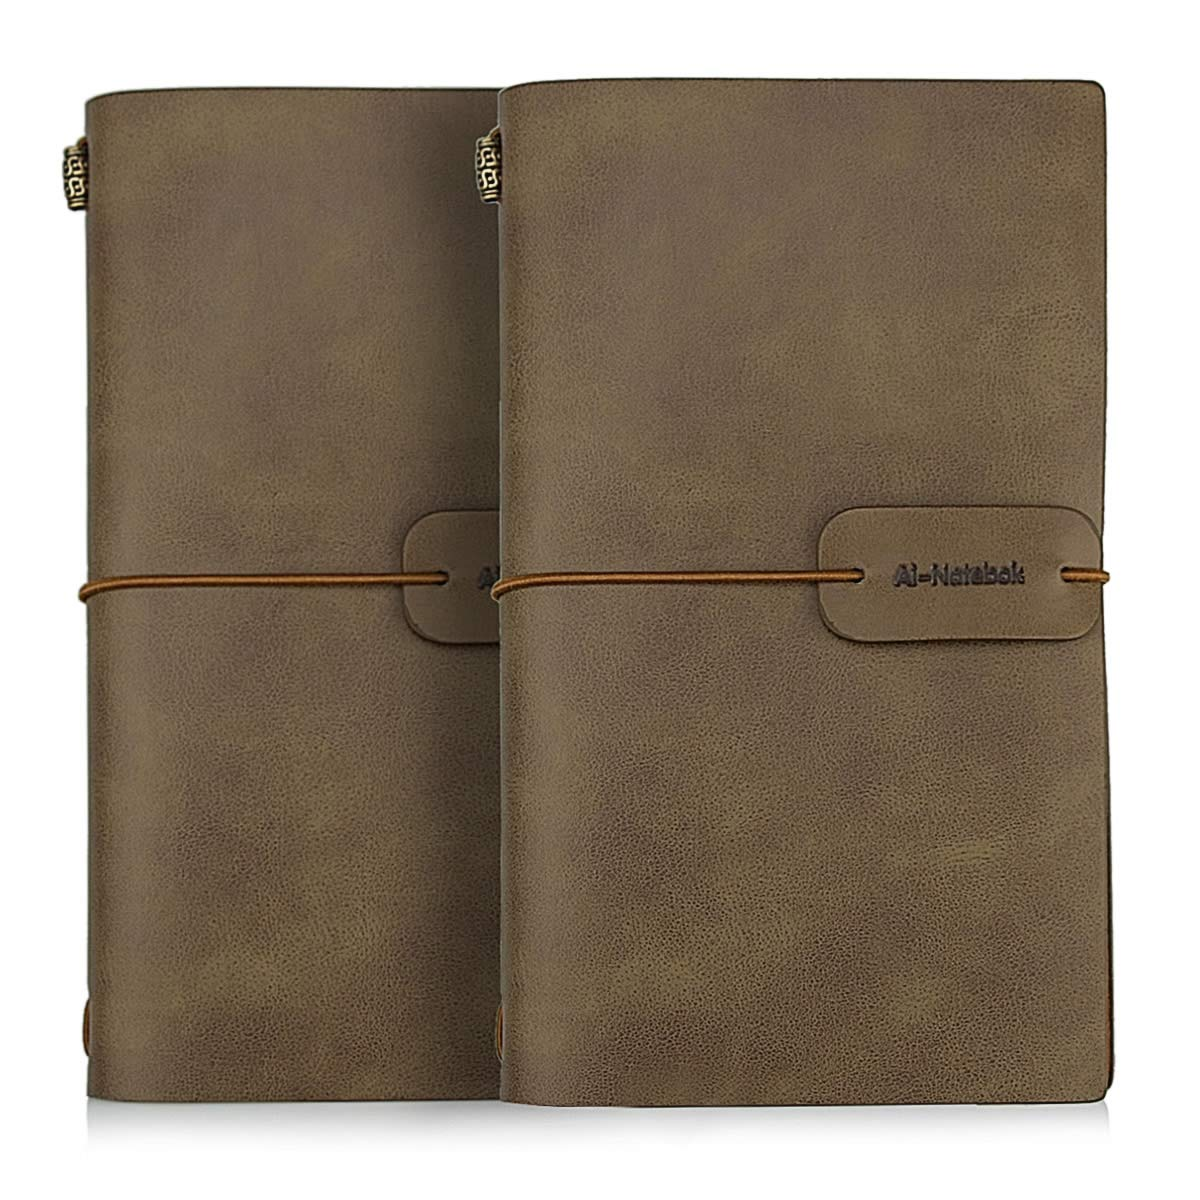 Travelers Notebook Refillable Leather Journal - Antique Handmade Vintage Faux Leather Bound Notebook for Men & Women, 4.72x7.87 Inch, 2 Pack